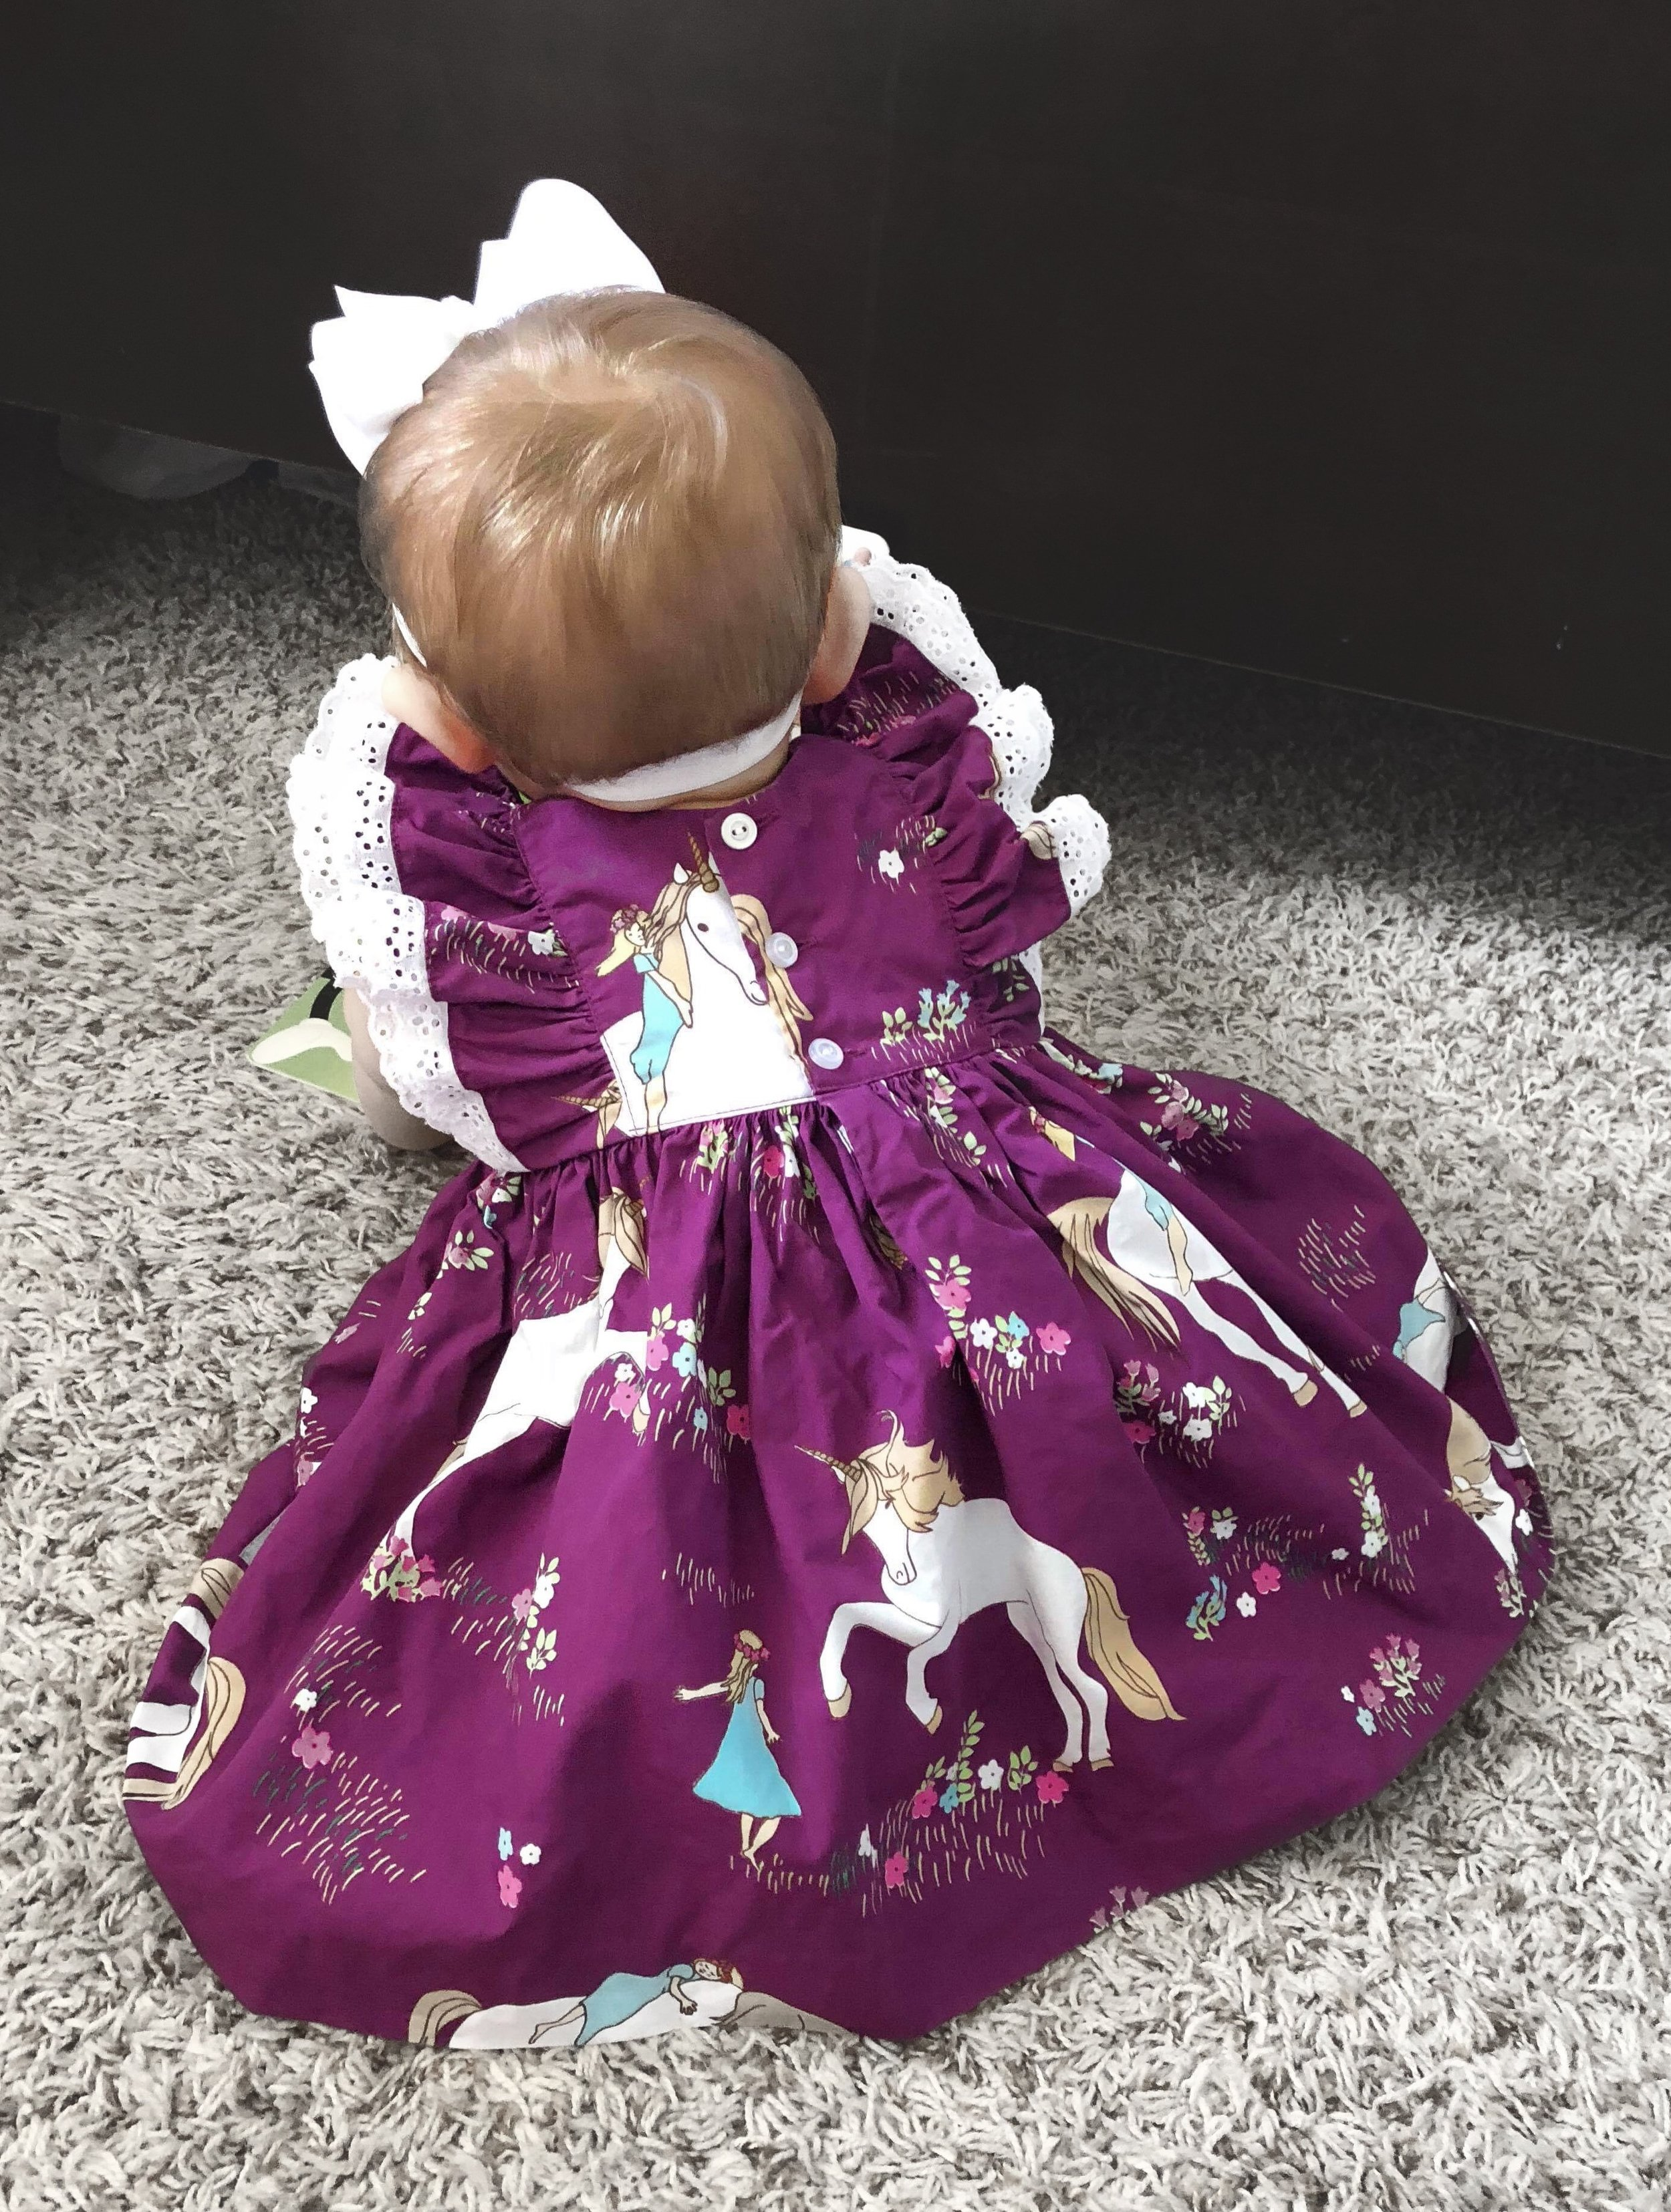 Fabric I designed for Eleanor Rose, beautifully modeled by Miss Emily Grace. :)